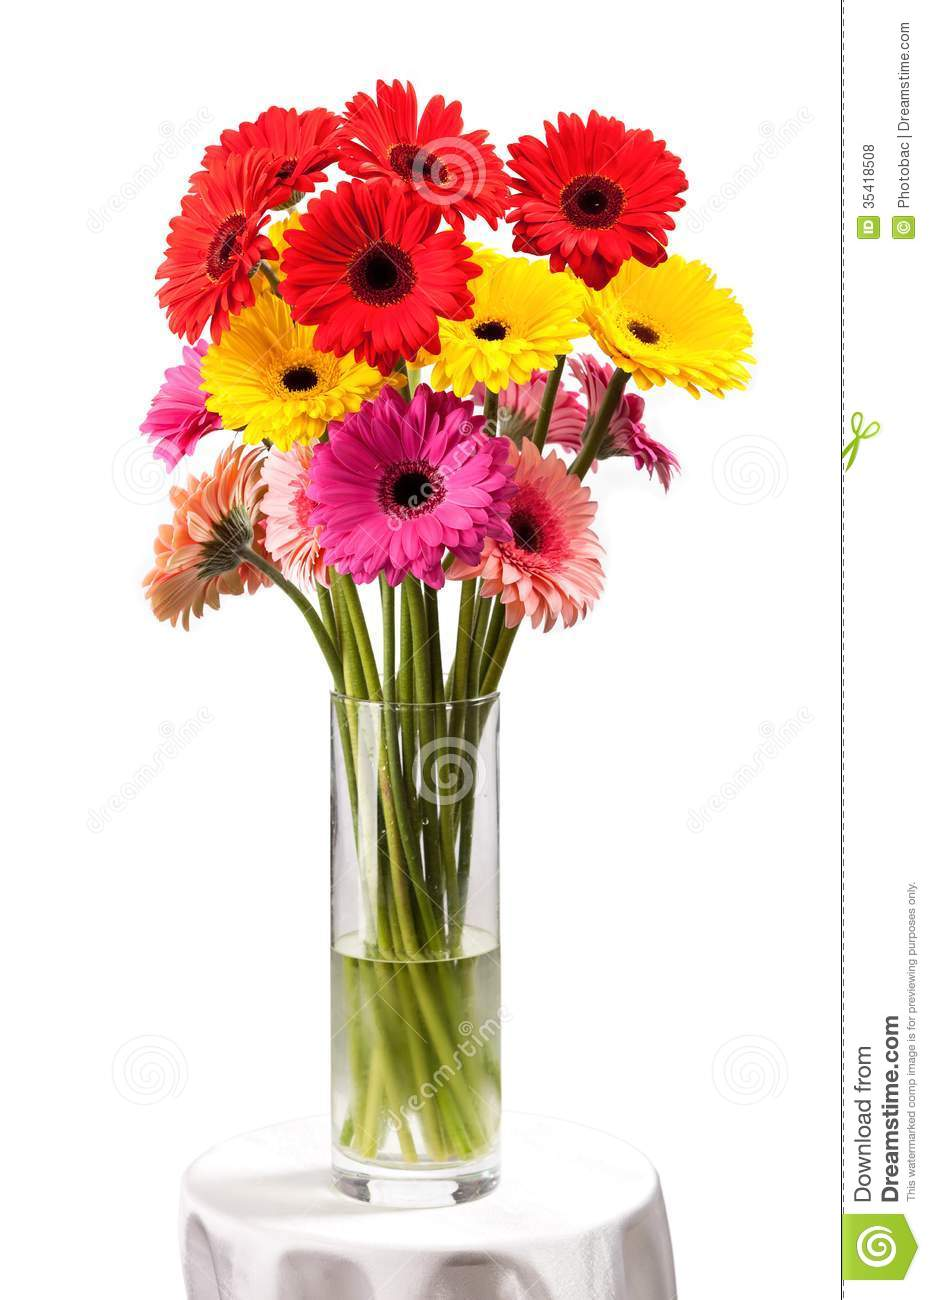 Gerbera Flowers In Vase Isolated Over White Royalty Free ...